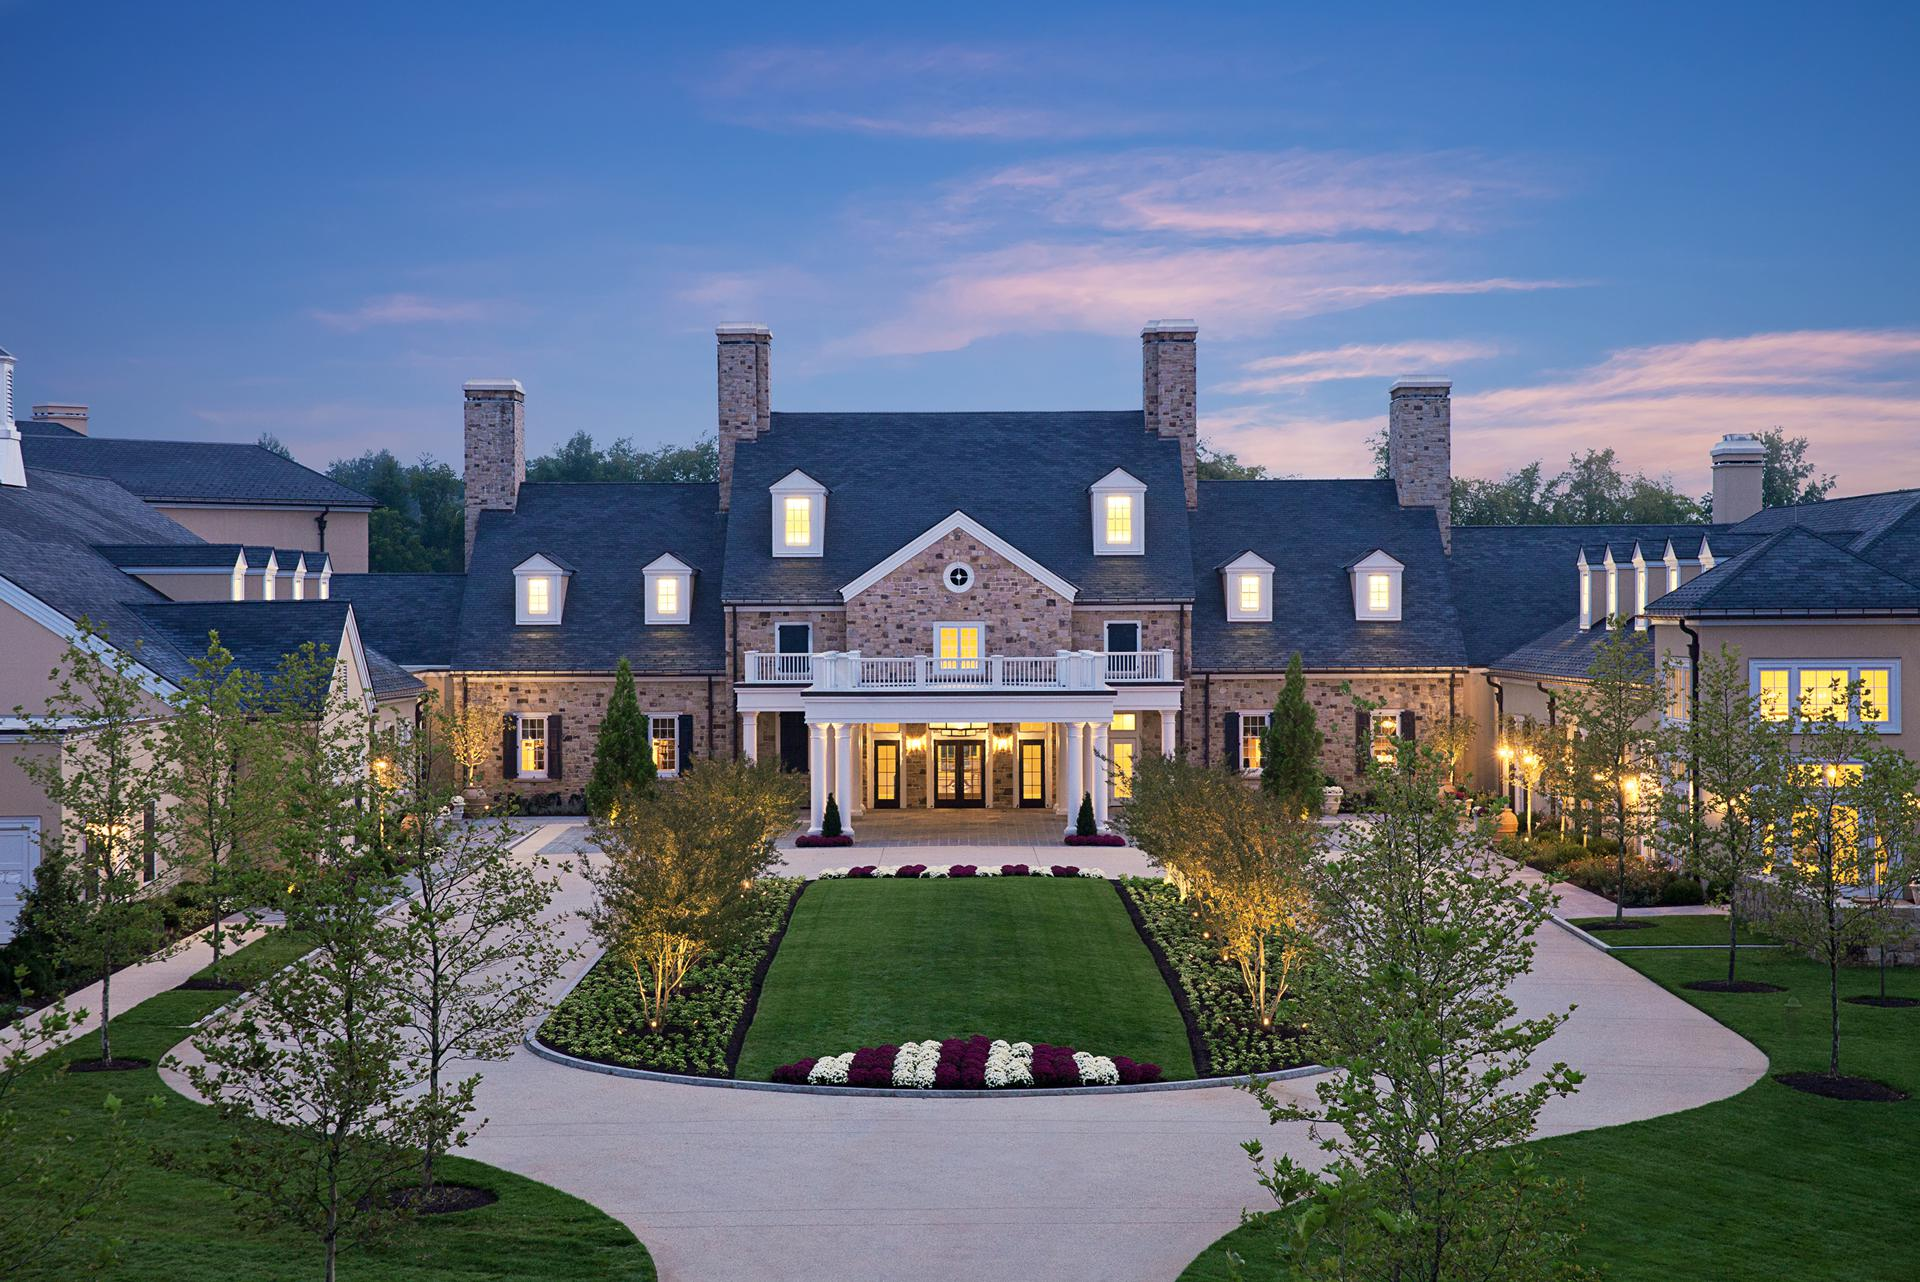 Located on 340 scenic acres in the heart of Virginia's horse and wine country, Salamander Resort & Spa has 168 well-appointed rooms spread across four floors, with each level themed by season.